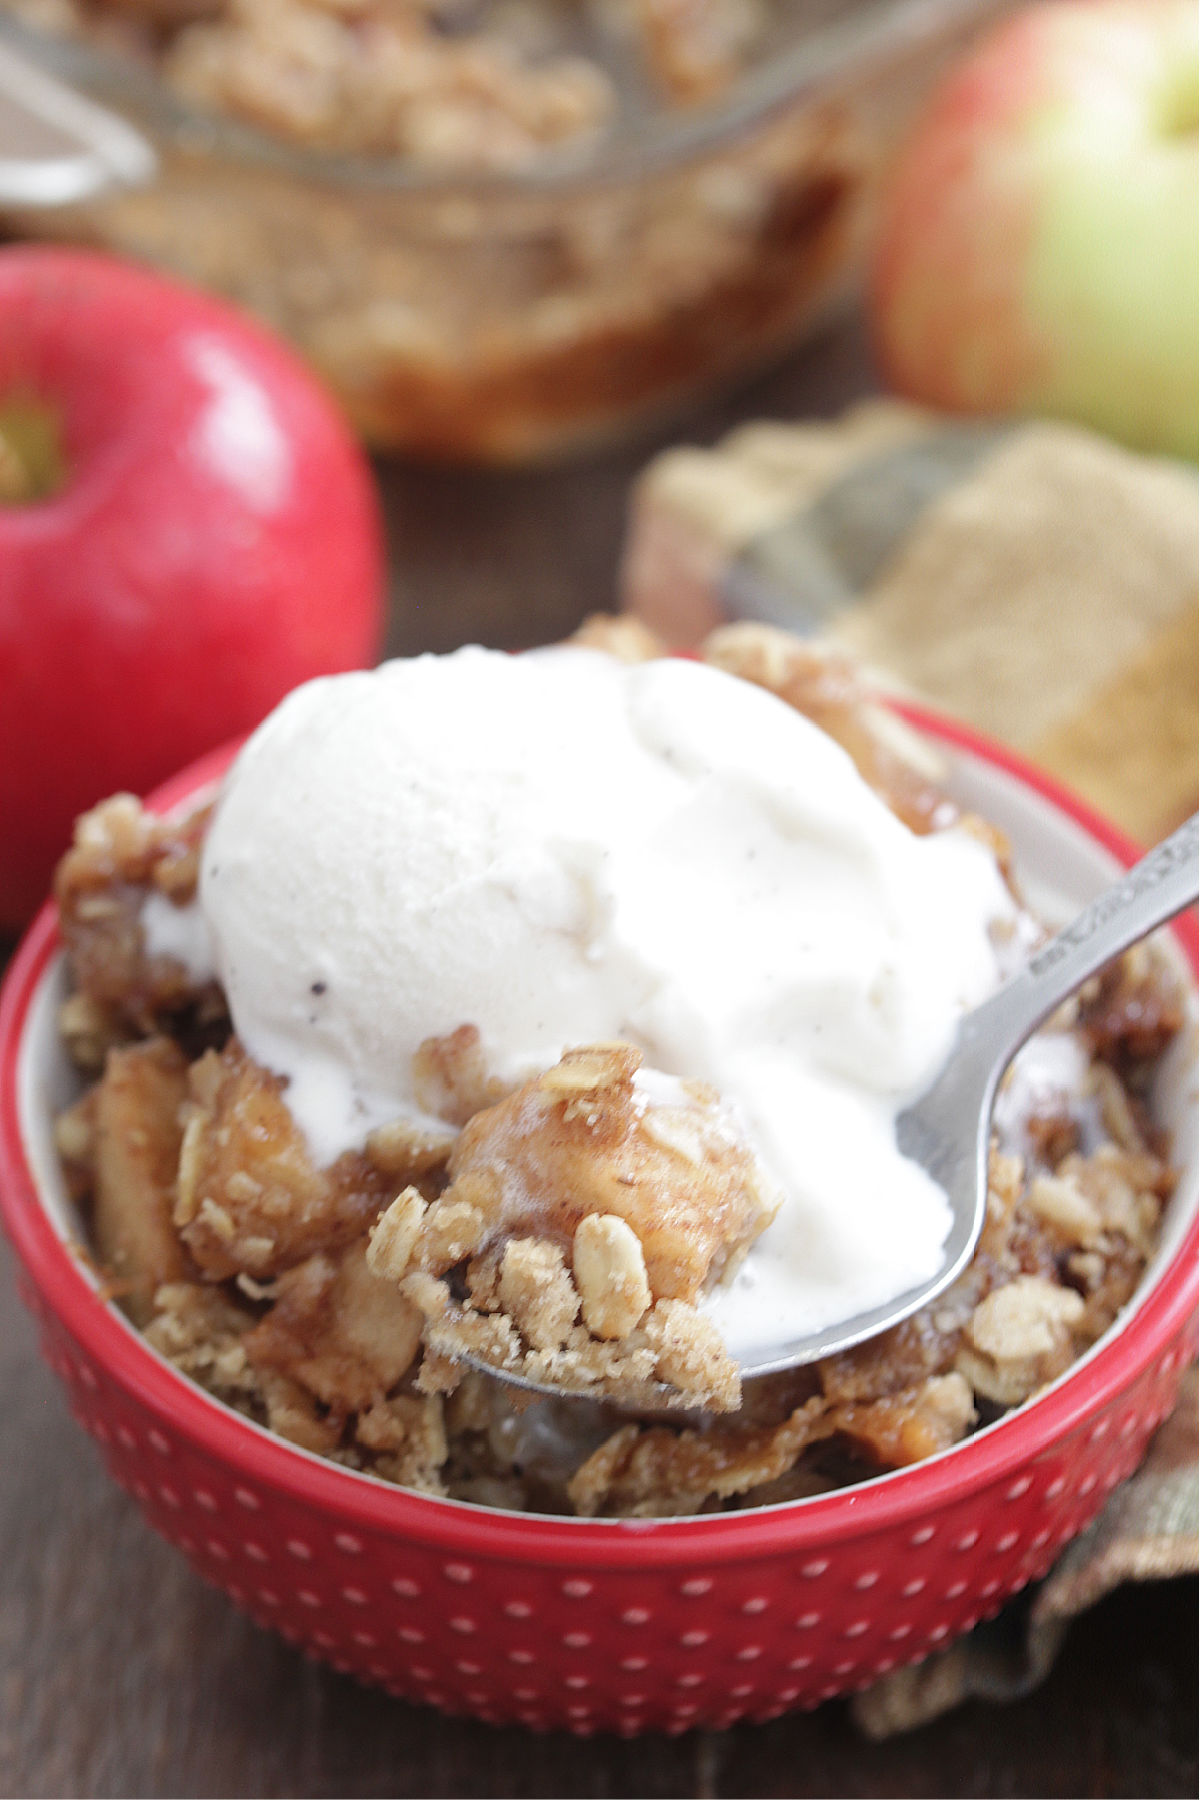 Caramel Apple Crisp in a red bowl with vanilla ice cream on top